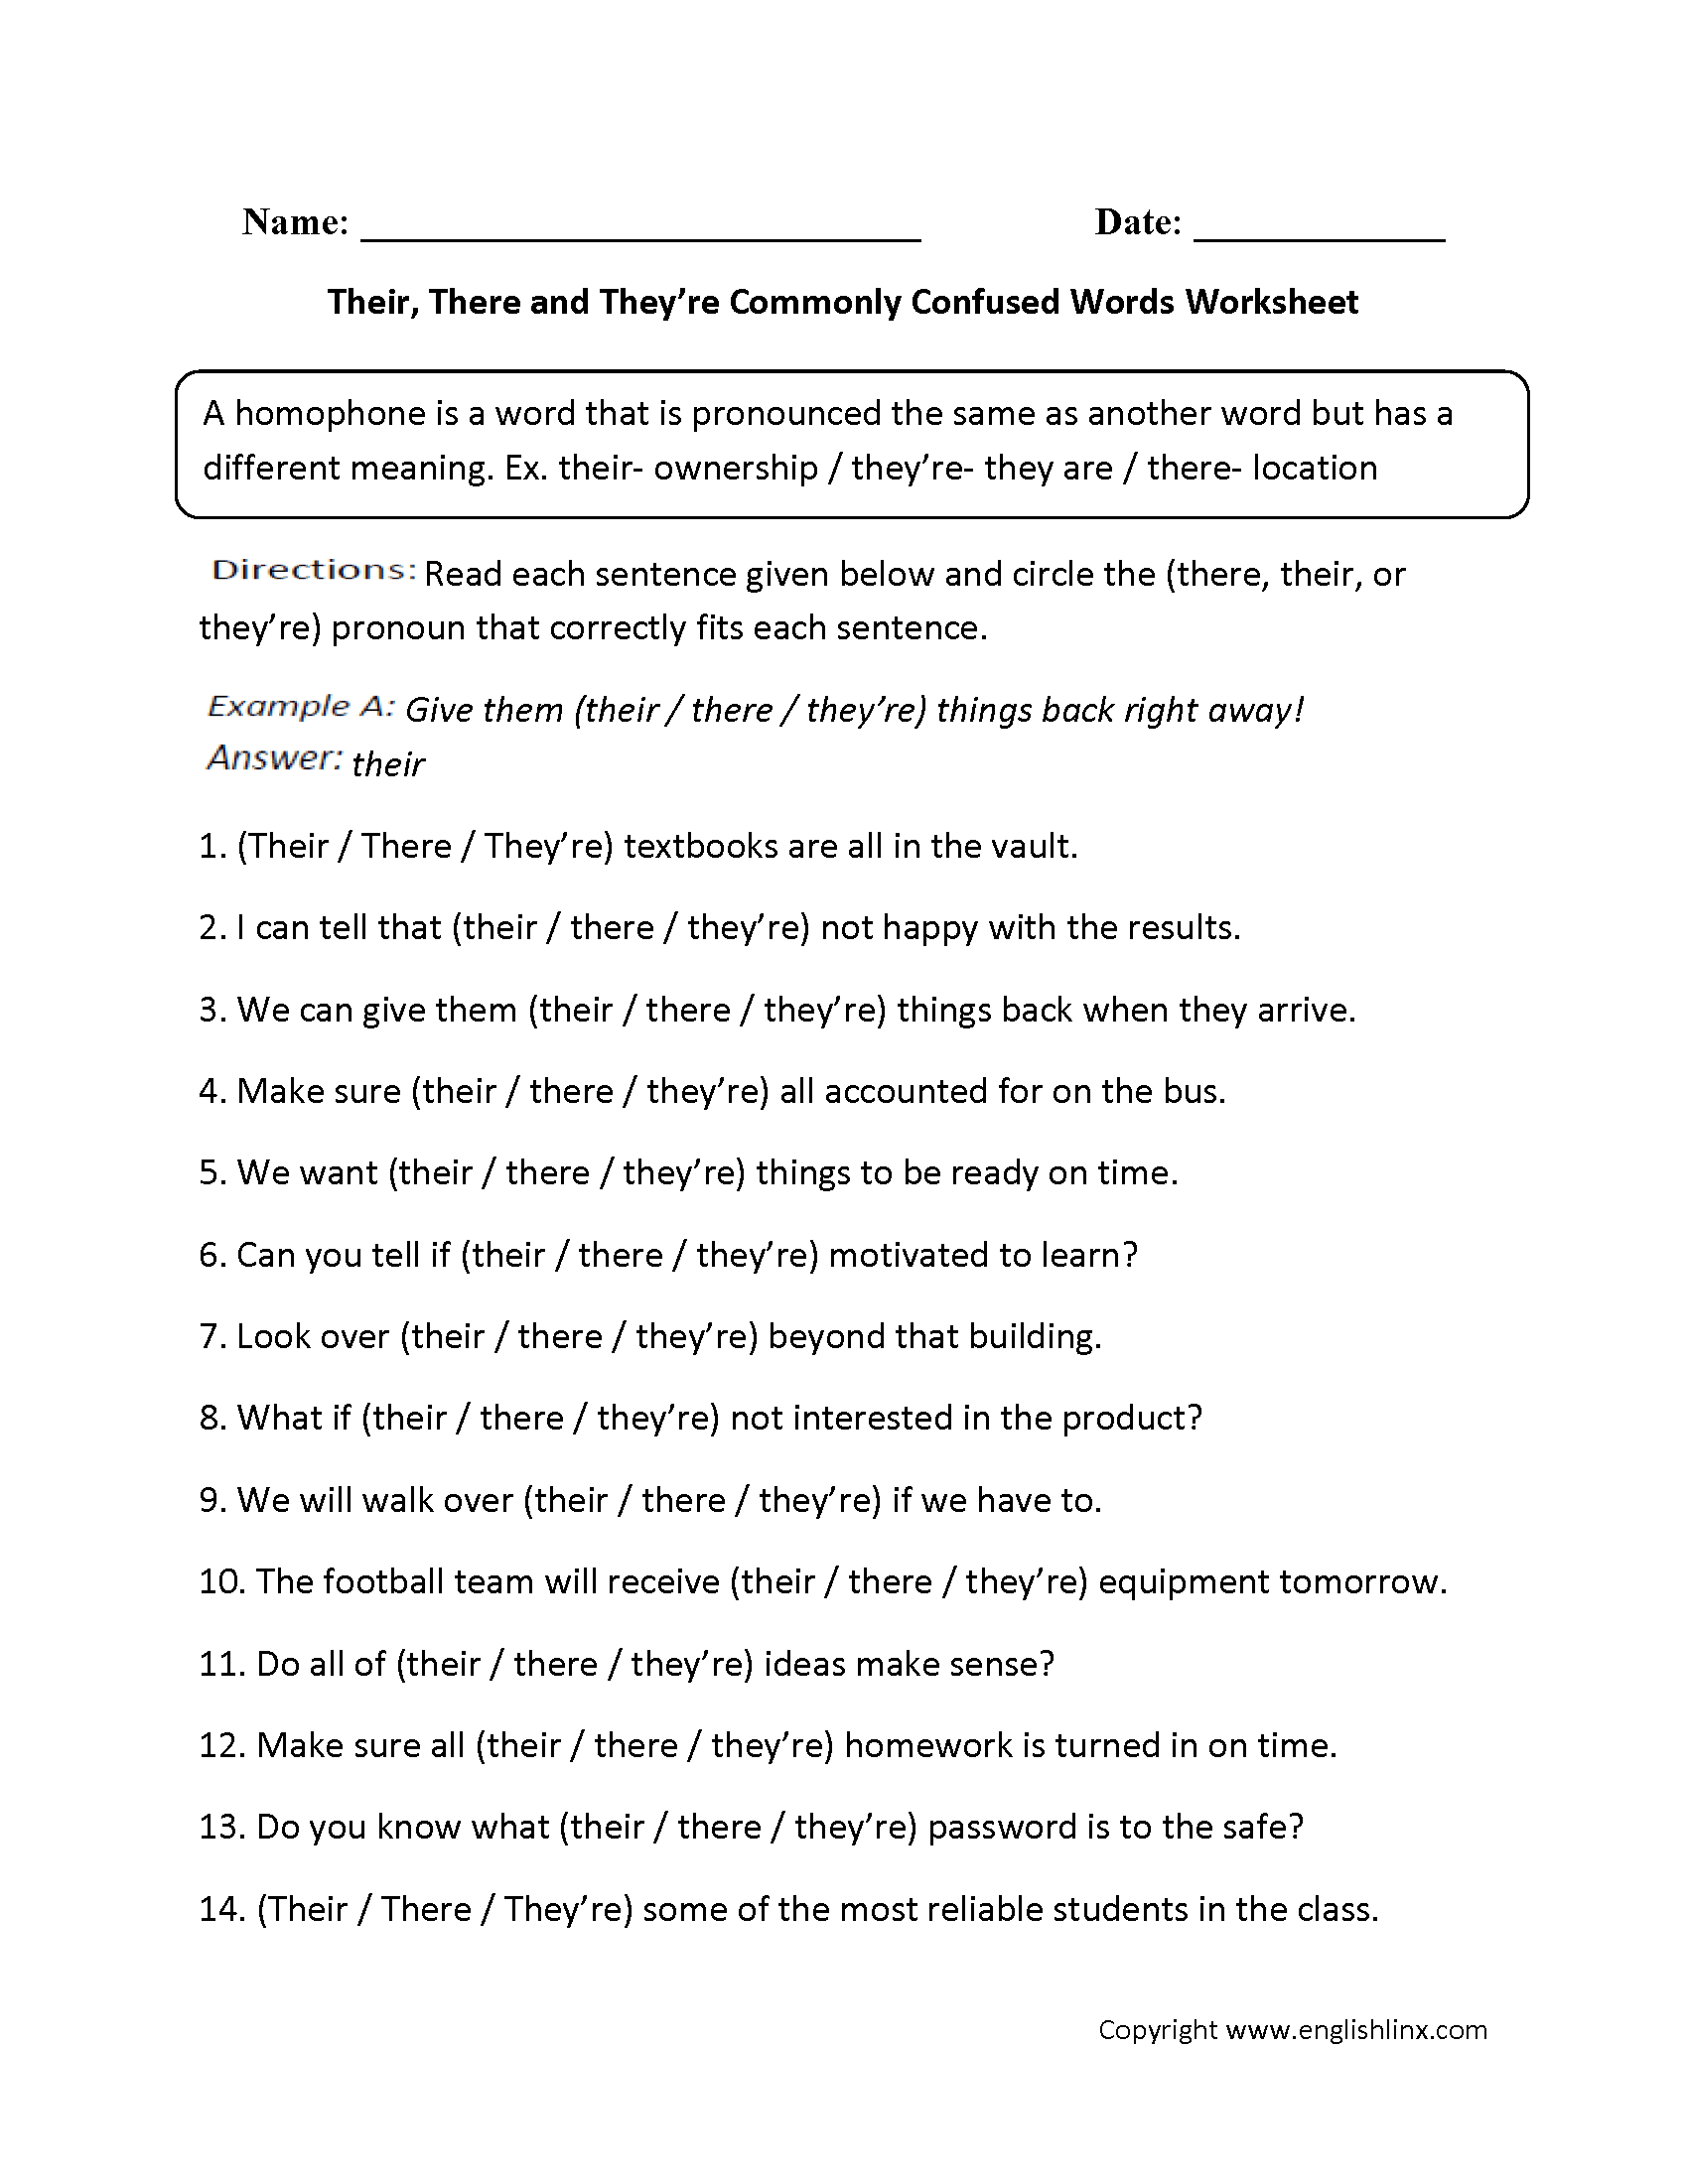 Commonly Confused Words Worksheets | Their, There, They're ...